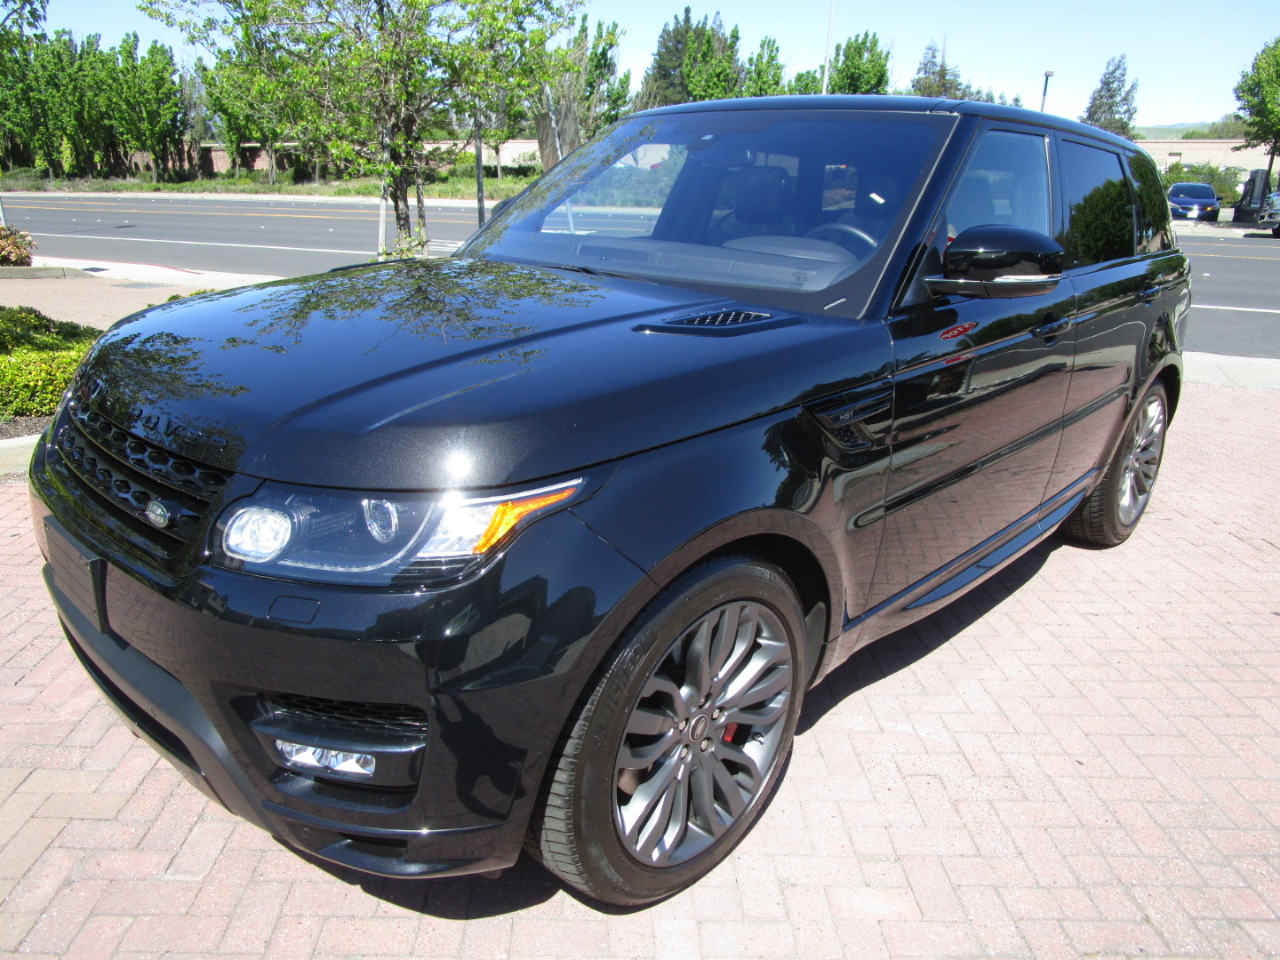 2016 Land Rover Range Rover Sport RARE LIMITED EDITION HST SPORT*ENHANCED BODY KIT*